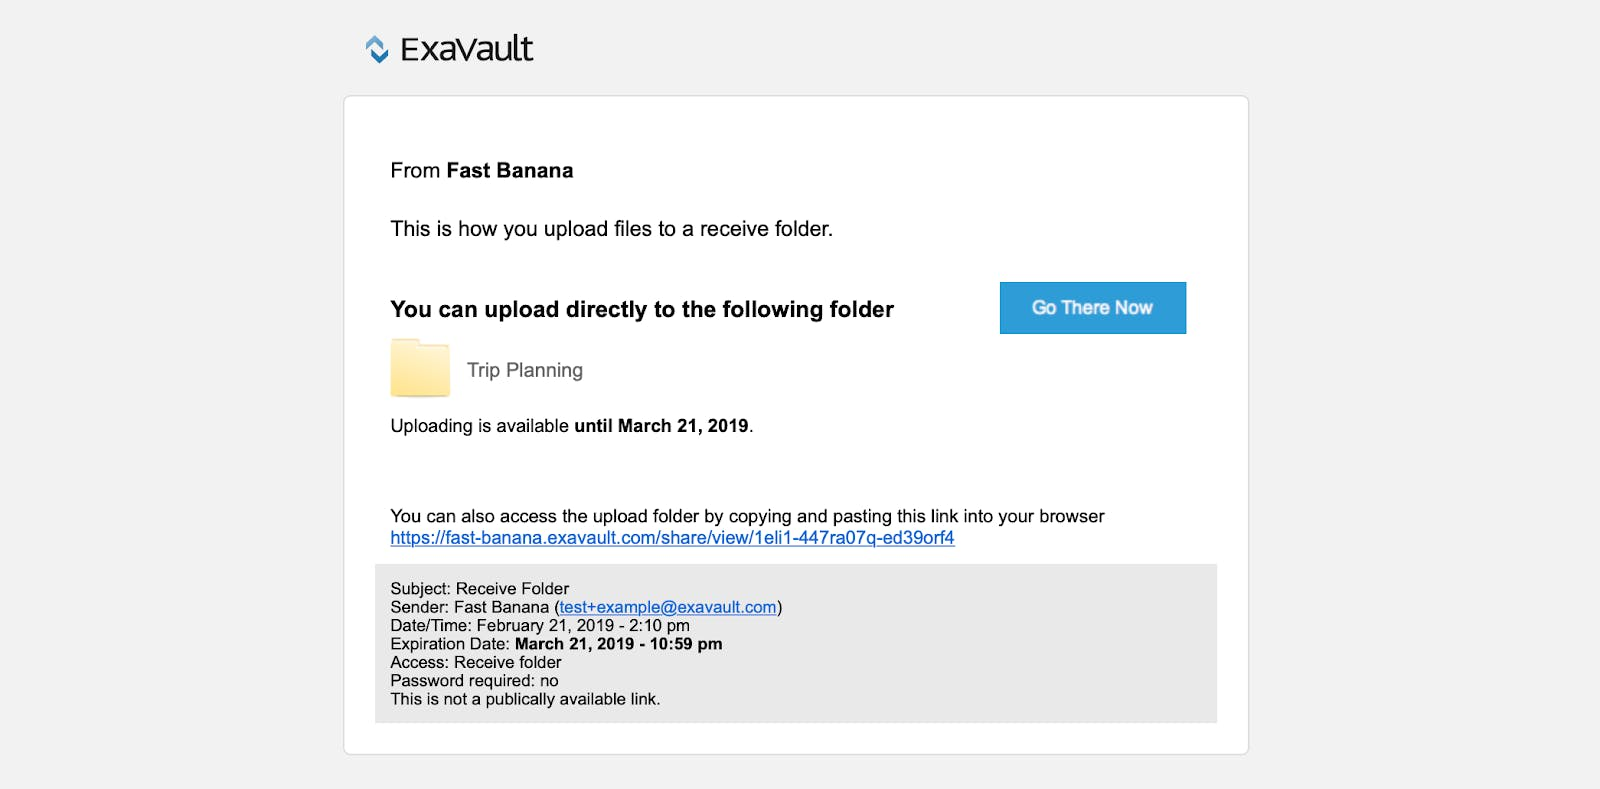 Email invite for customers to upload files to a receive folder in ExaVault.